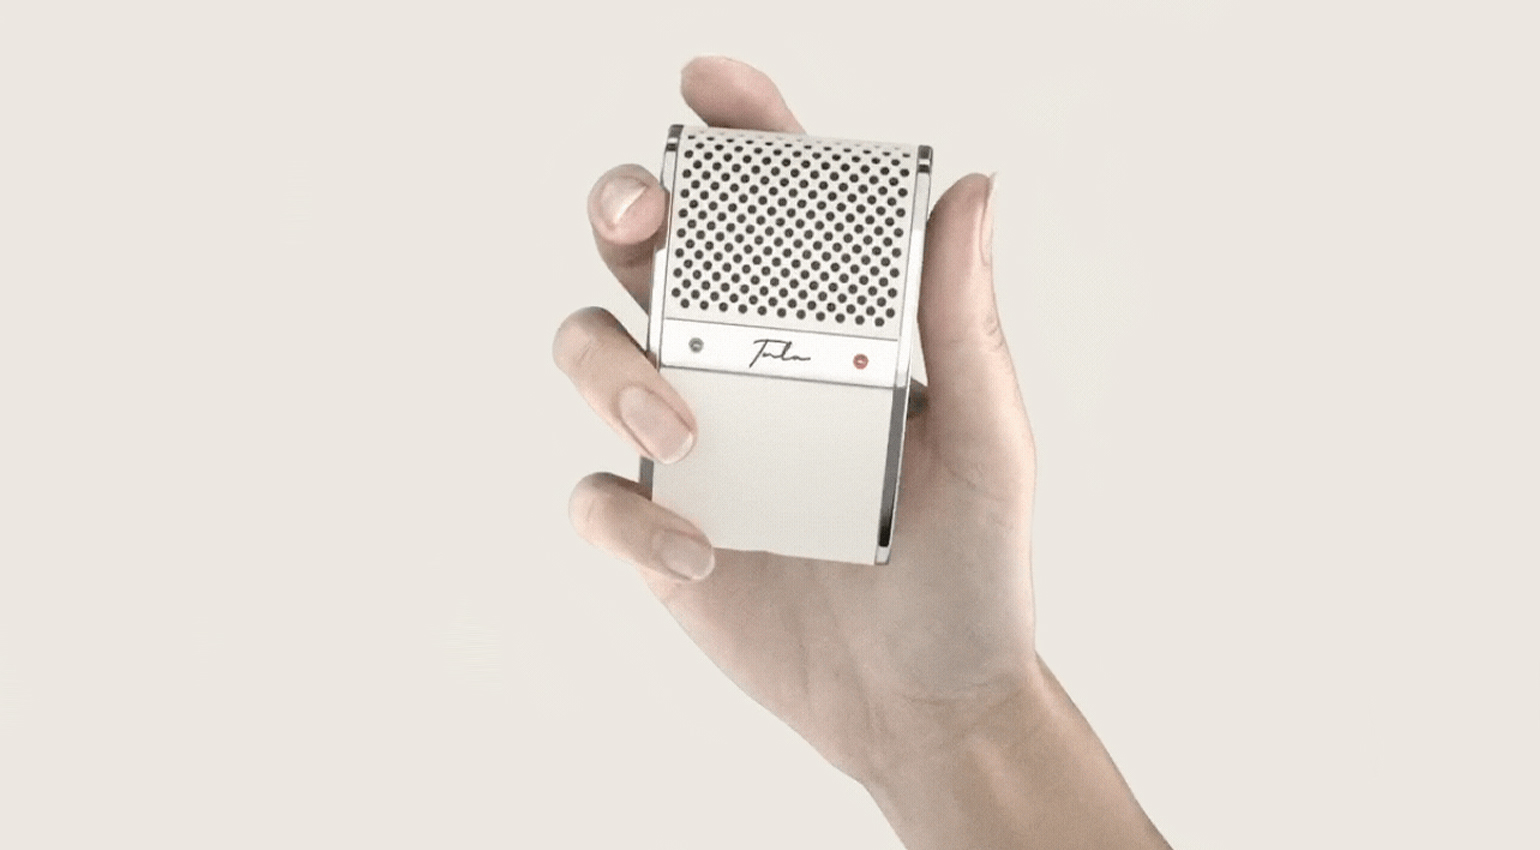 Tula Mic is a portable microphone that offers 12 hours of continuous recording